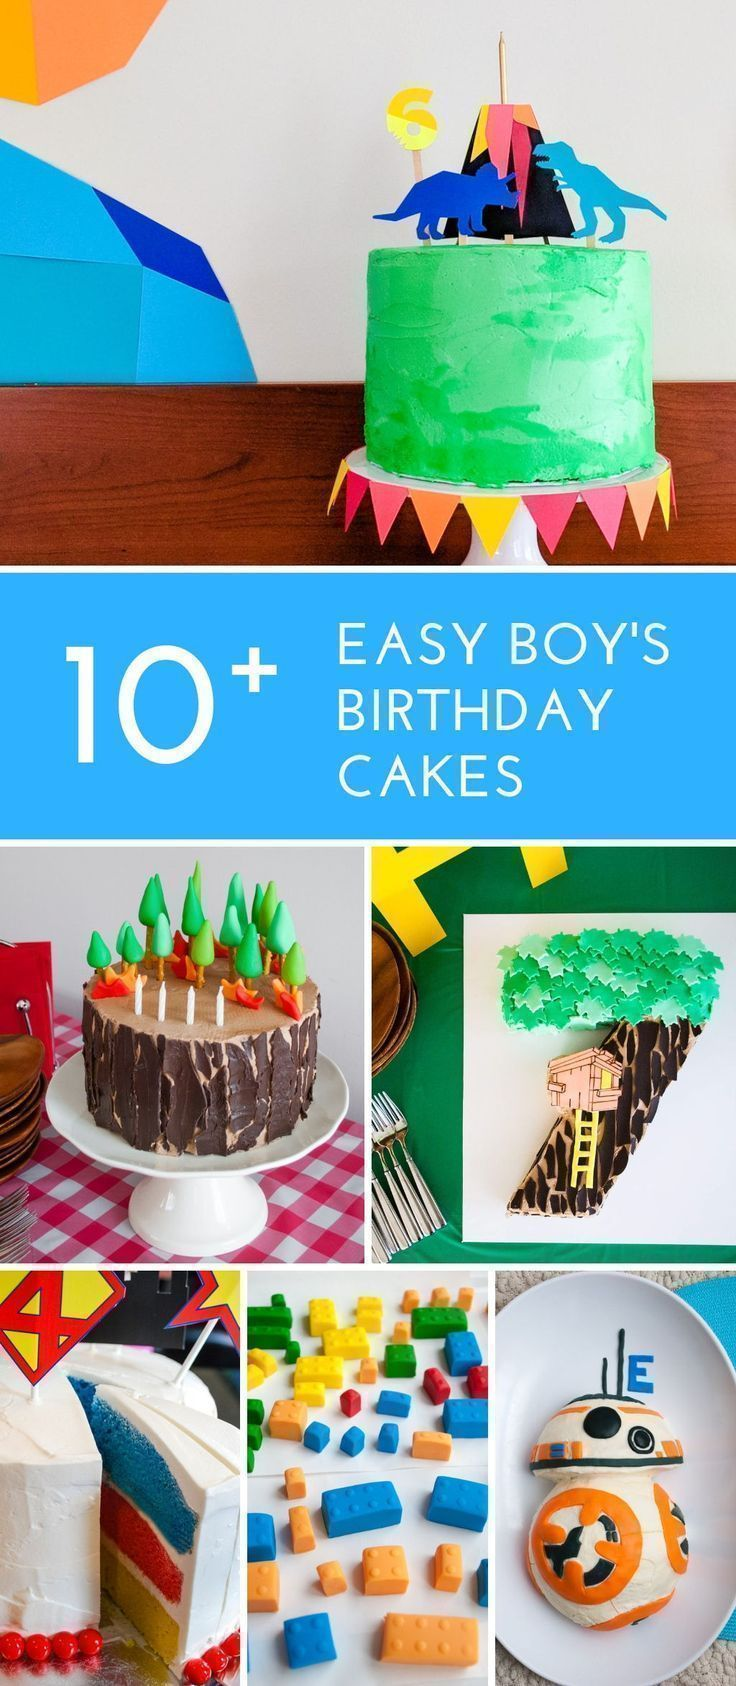 Simple Cake Ideas For Boy